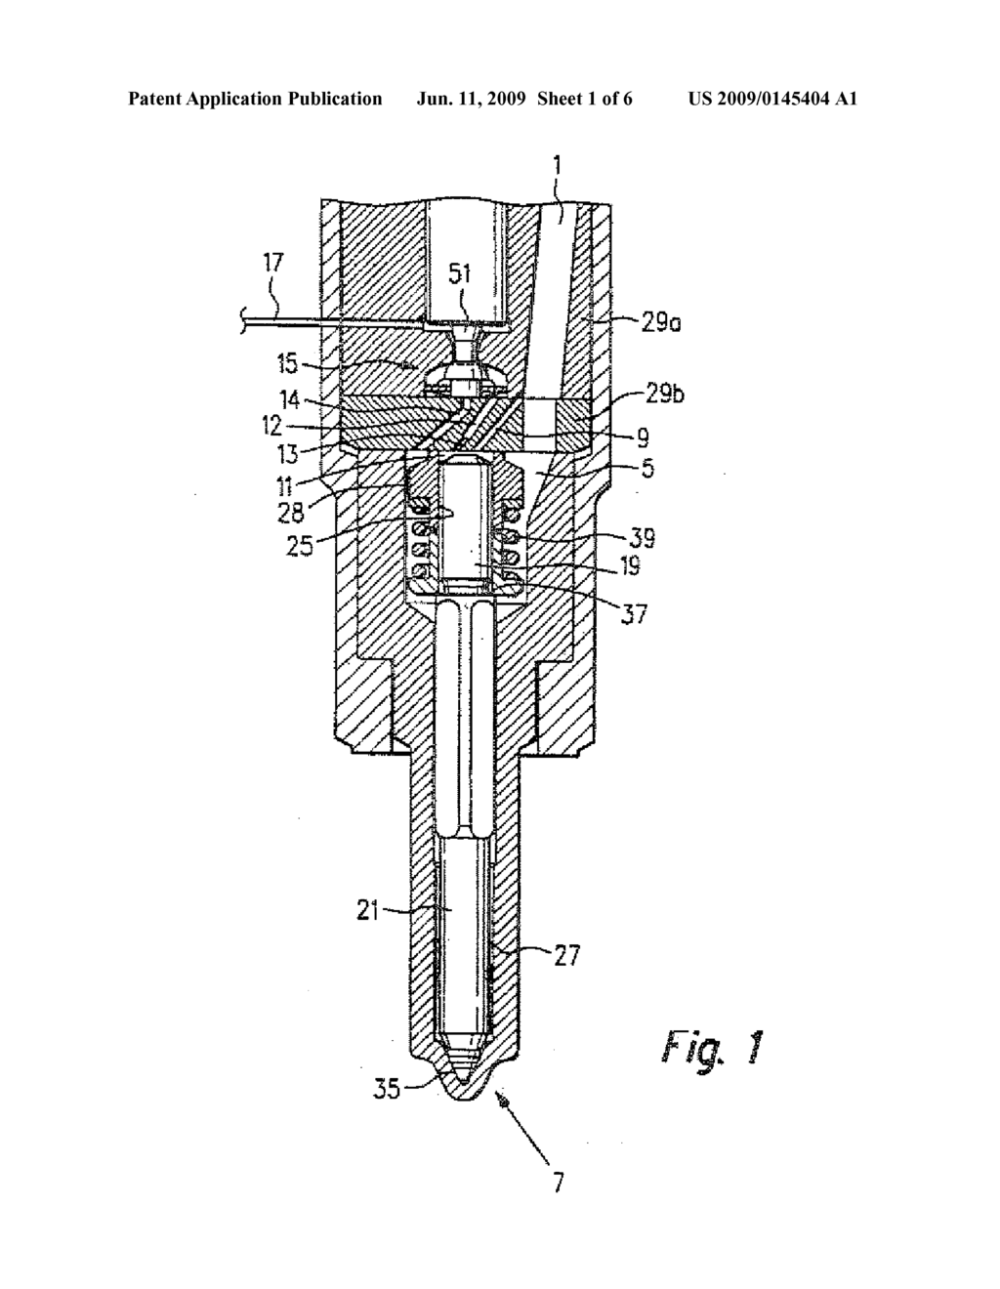 medium resolution of injector of a fuel injection system of an internal combustion engine diagram schematic and image 02